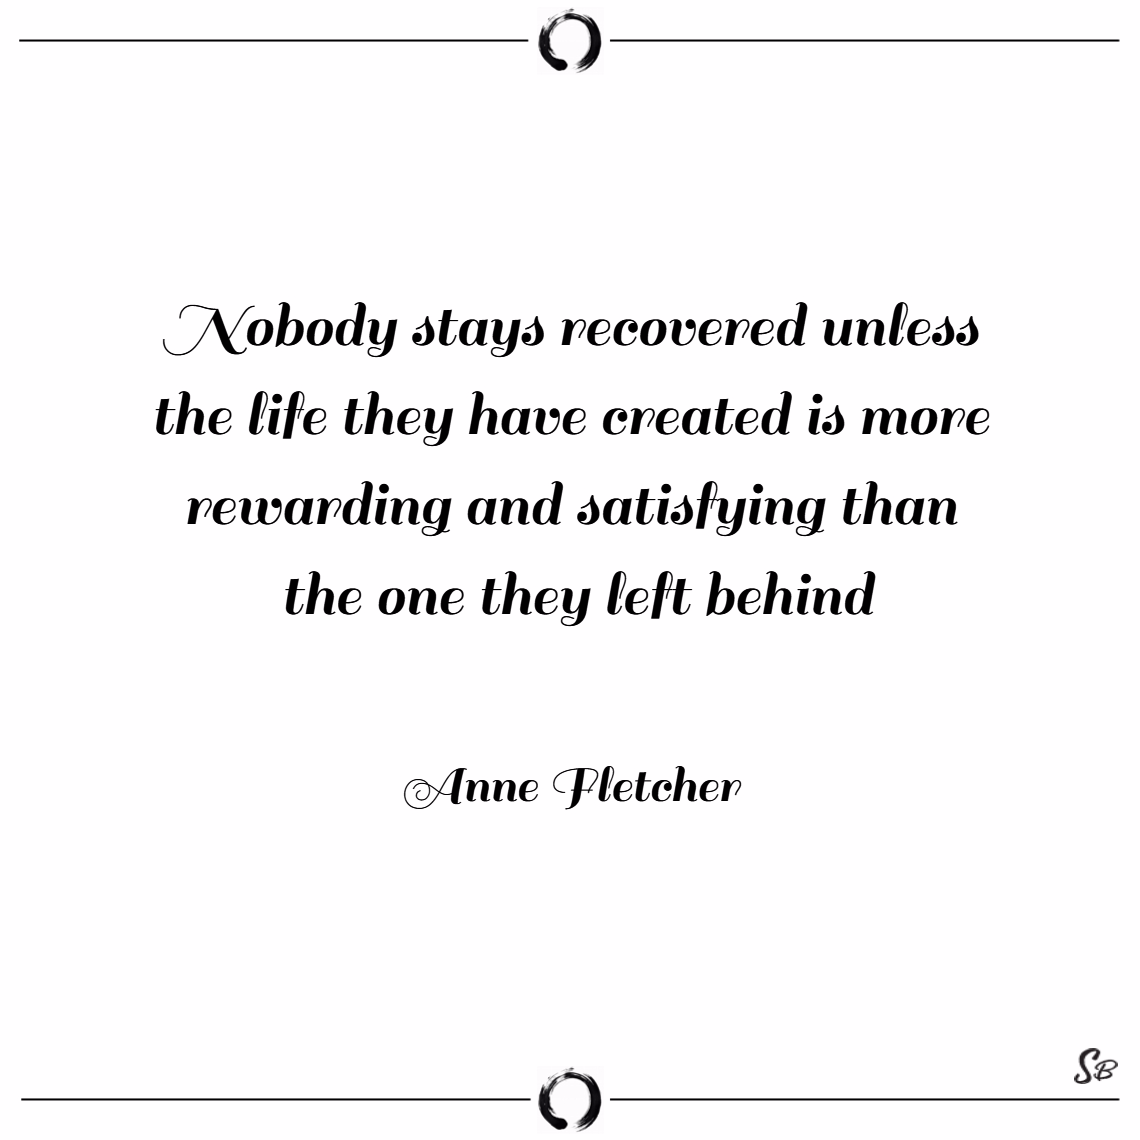 Nobody stays recovered unless the life they have created is more rewarding and satisfying than the one they left behind. – anne fletcher